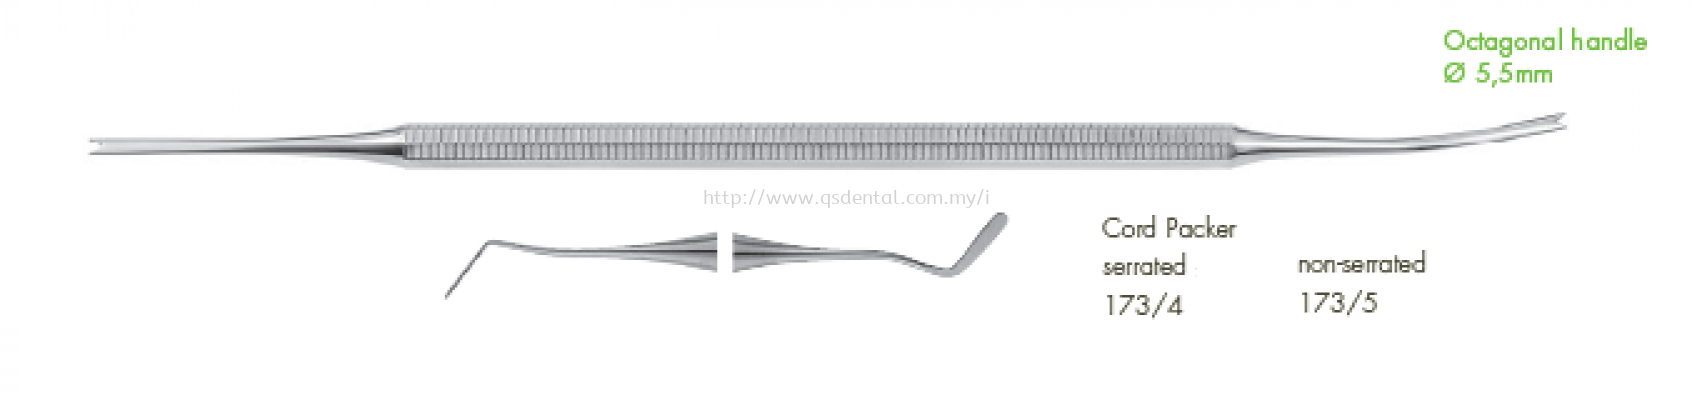 5.5mm Octagonal Handle Serrated & Unserrated Cord Packer